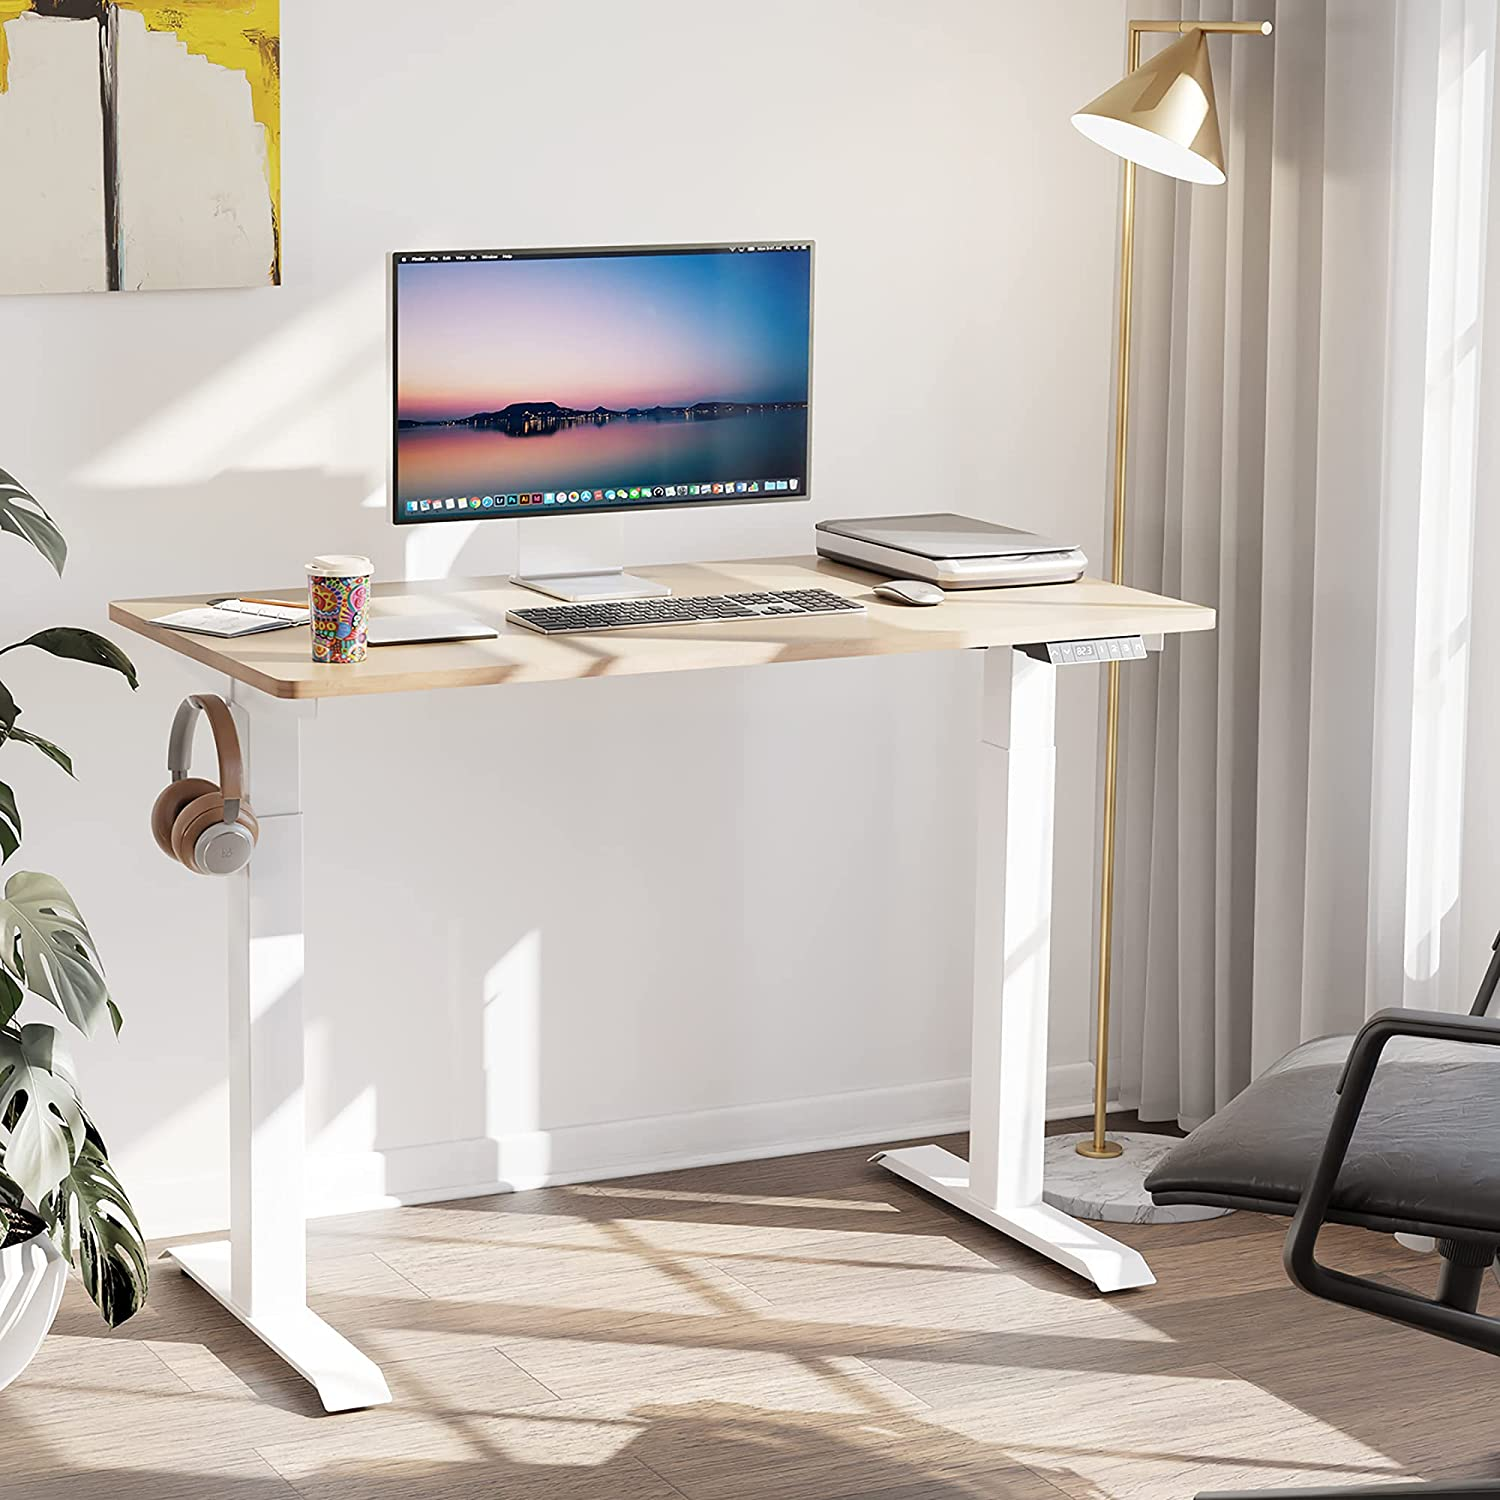 Walsunny Electric Height Adjustable Standing Desk, 48 x 24 Inches Splice Board, Sit Stand Up Computer Table with Memory Preset Controller for Home, Office, White Frame/Natural Top